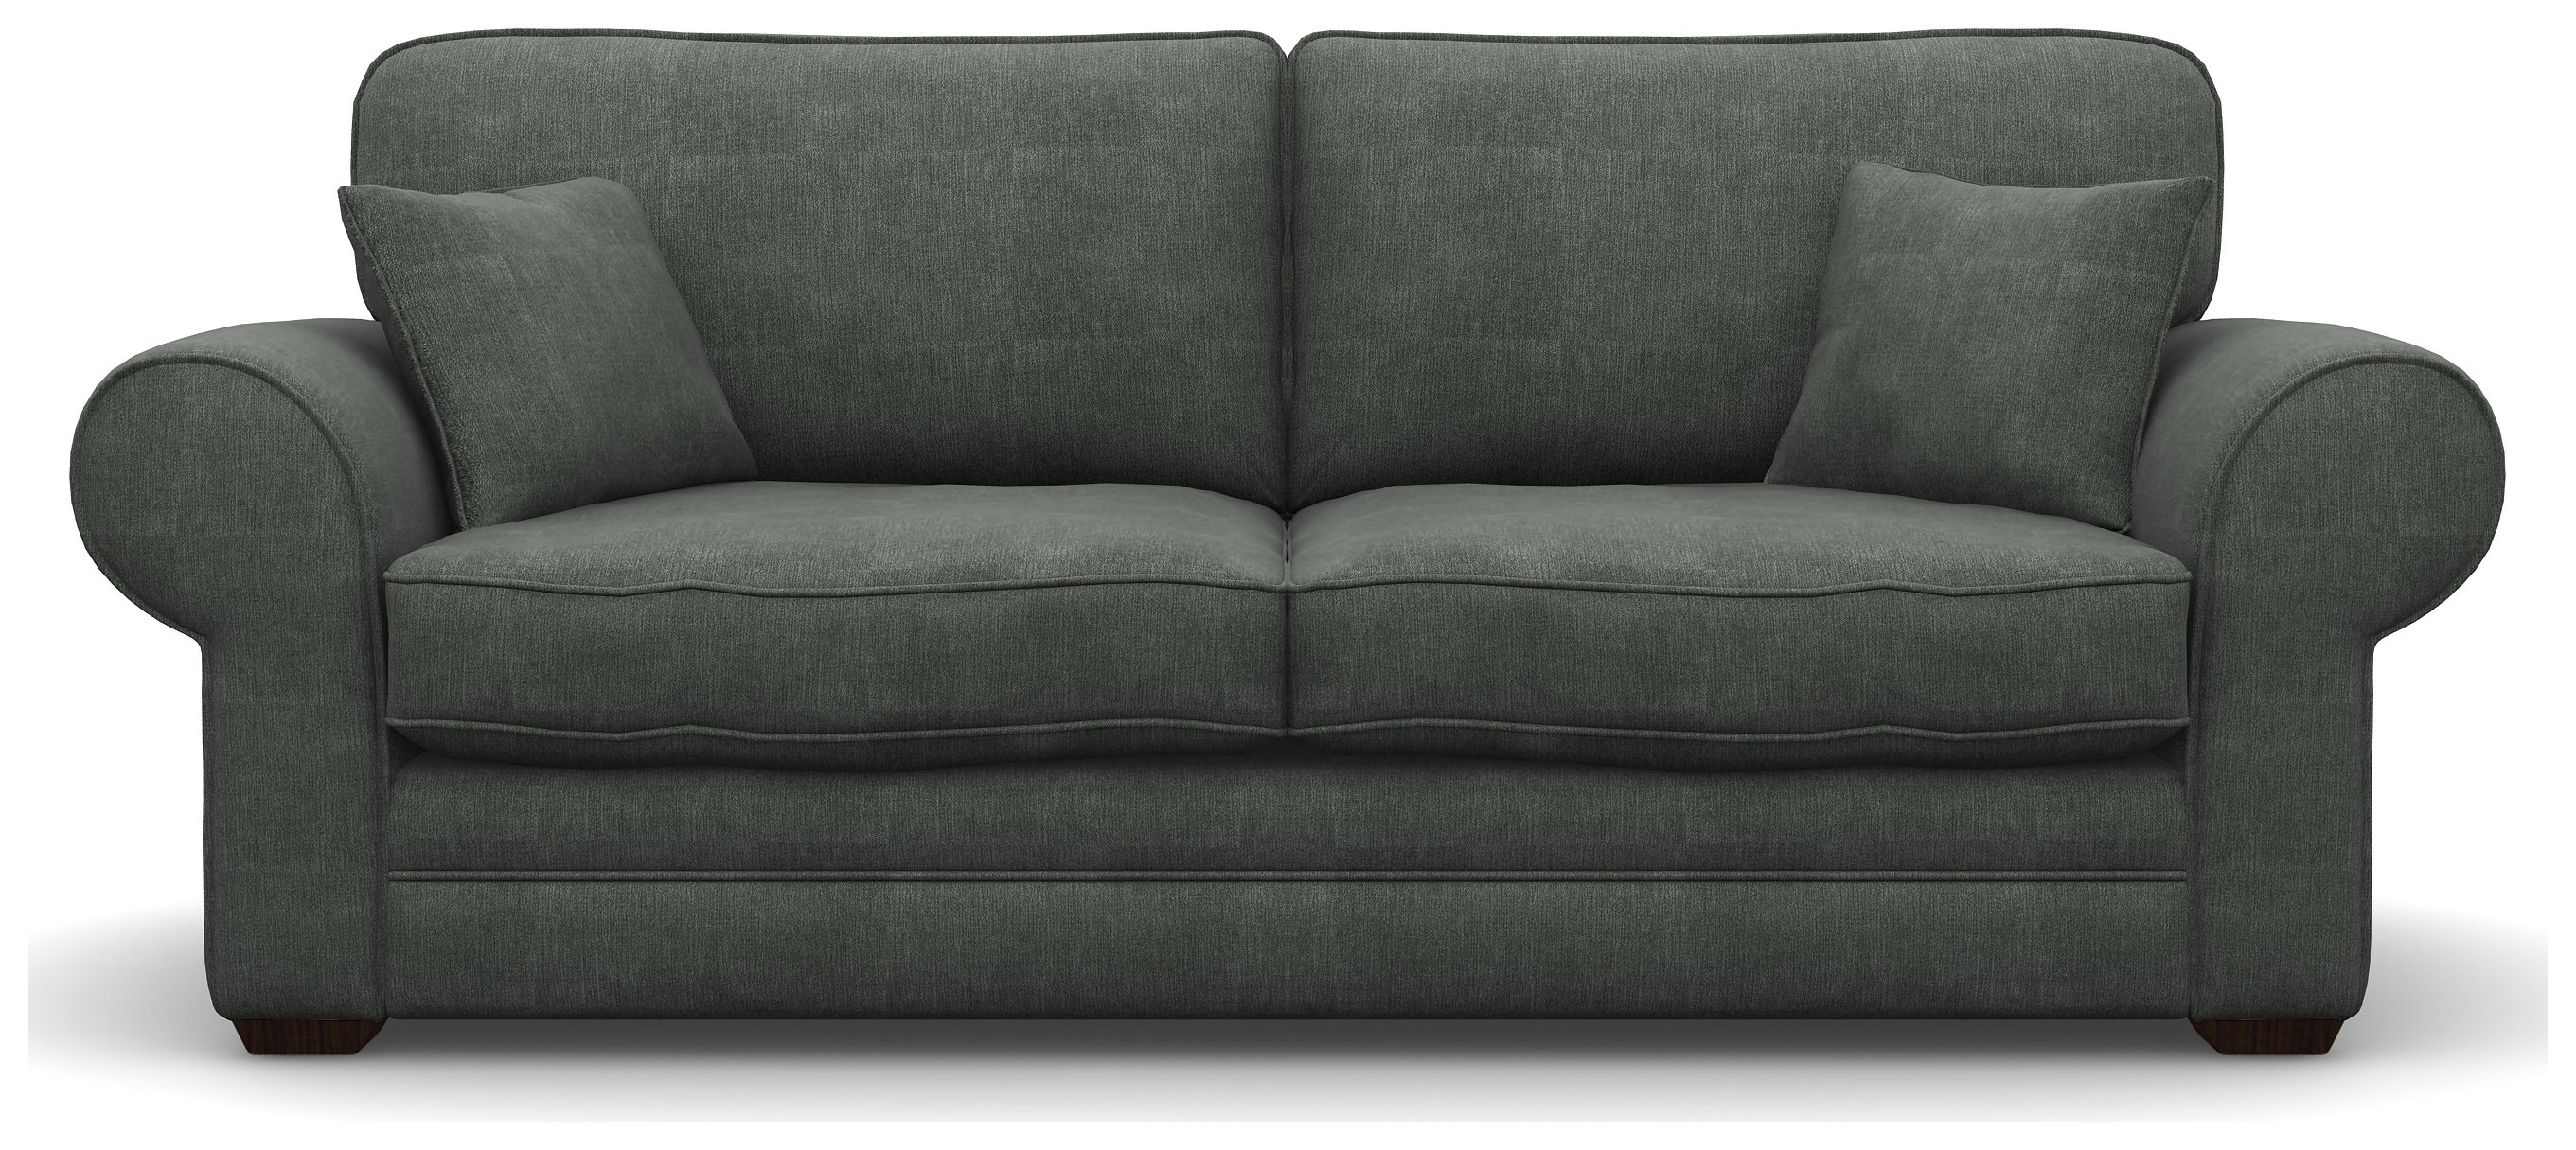 Heart of House Chedworth 3 Seater Fabric Sofa - Smooth Charcoal